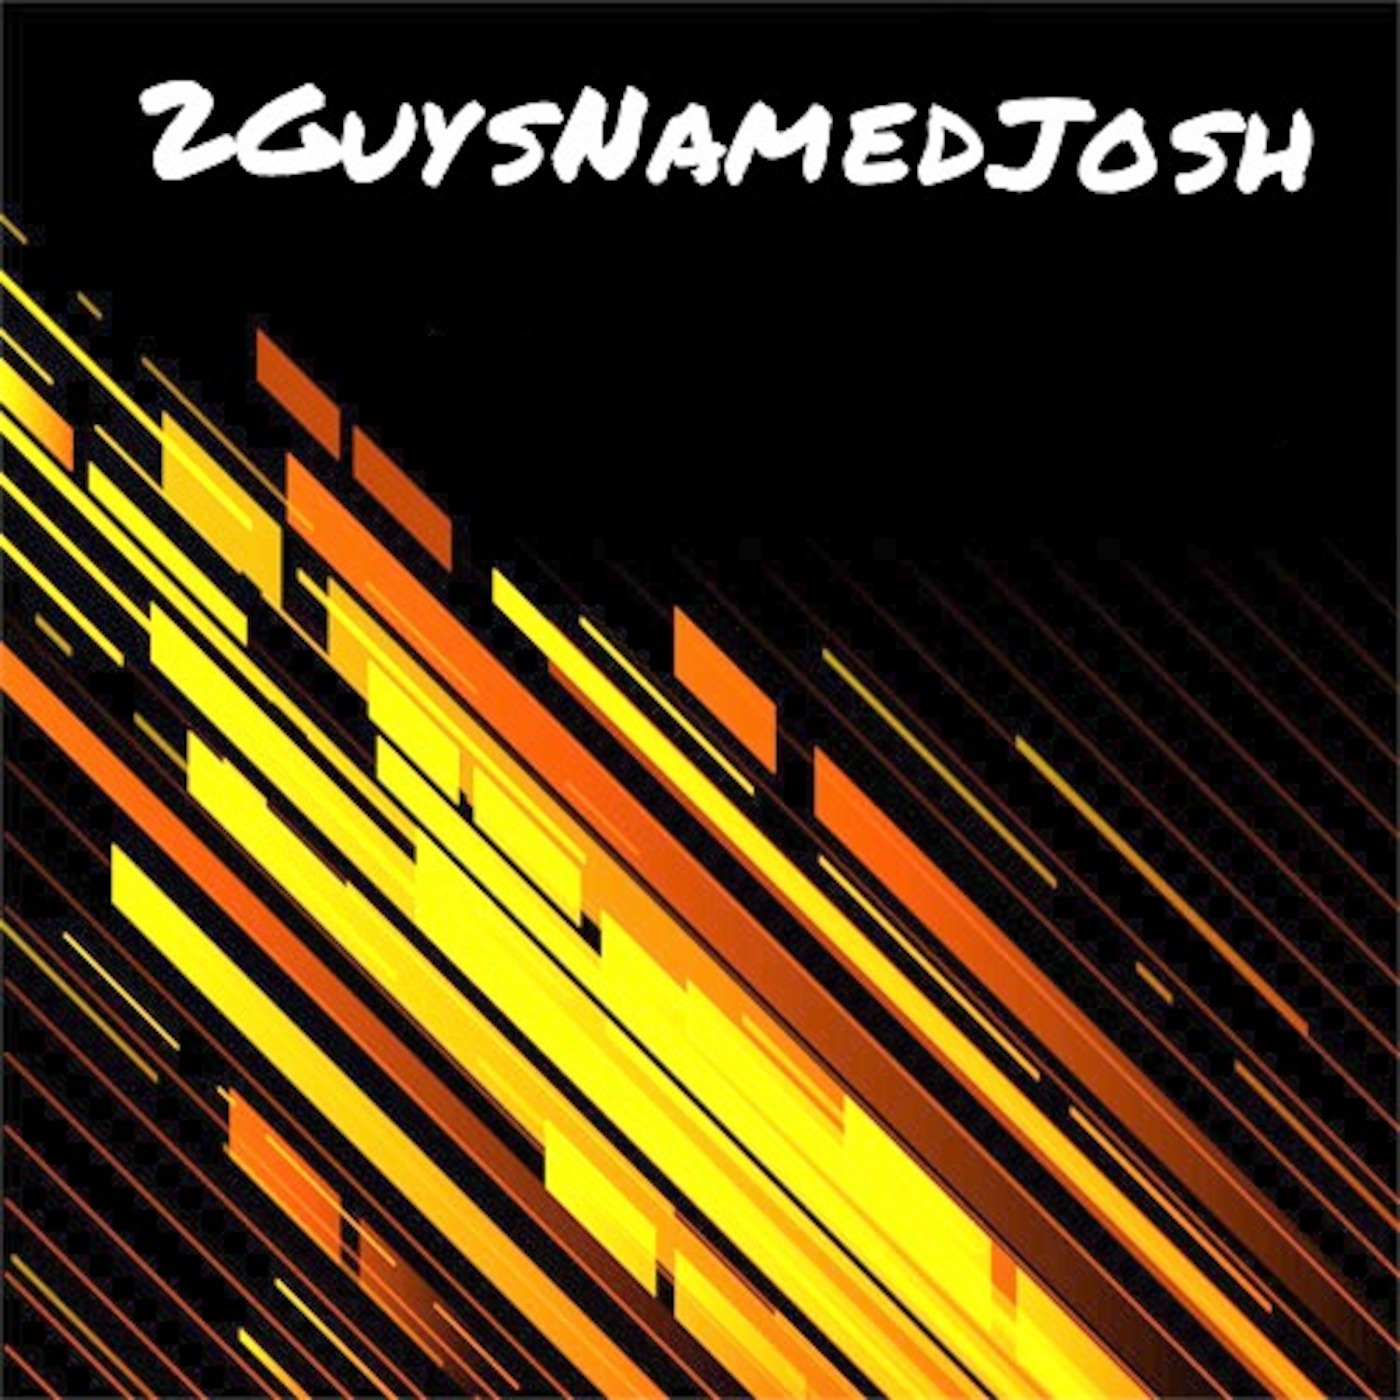 2 Guys Named Josh